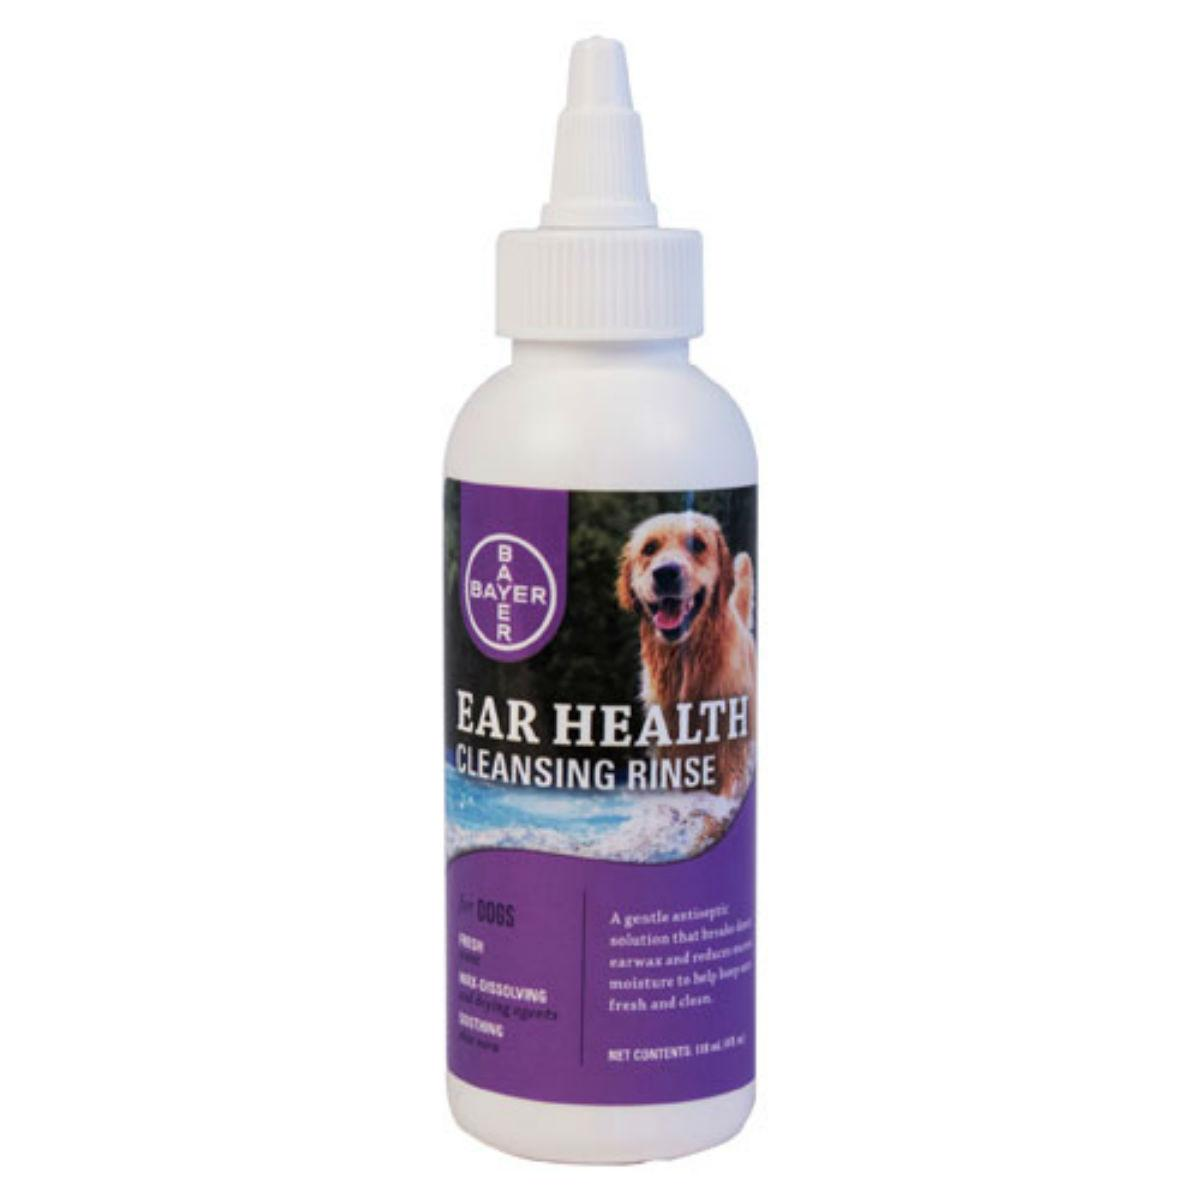 Bayer Dog Ear Health Cleansing Rinse for Dogs